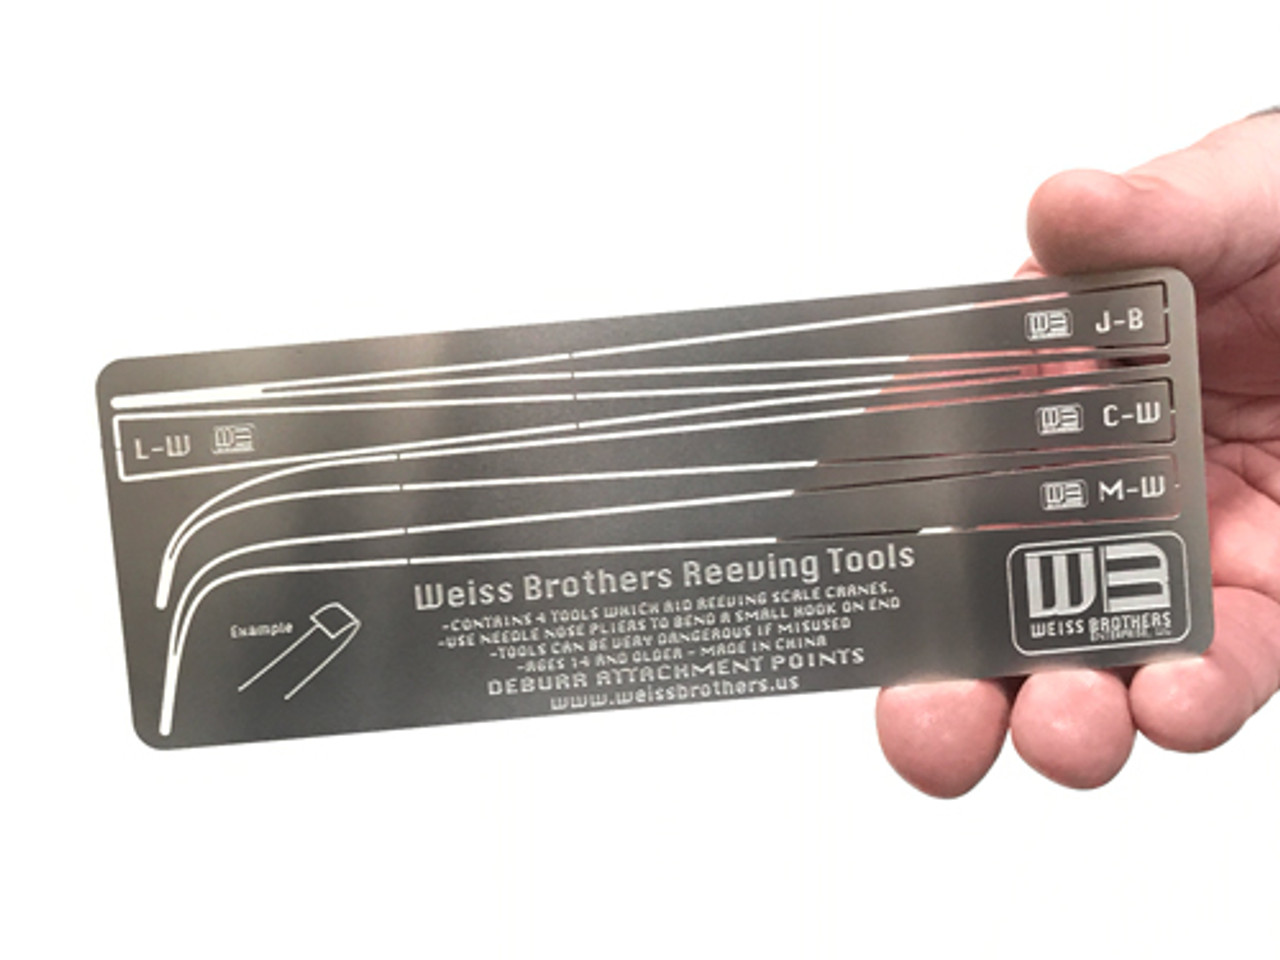 Weiss Brother Reeving Tool kit